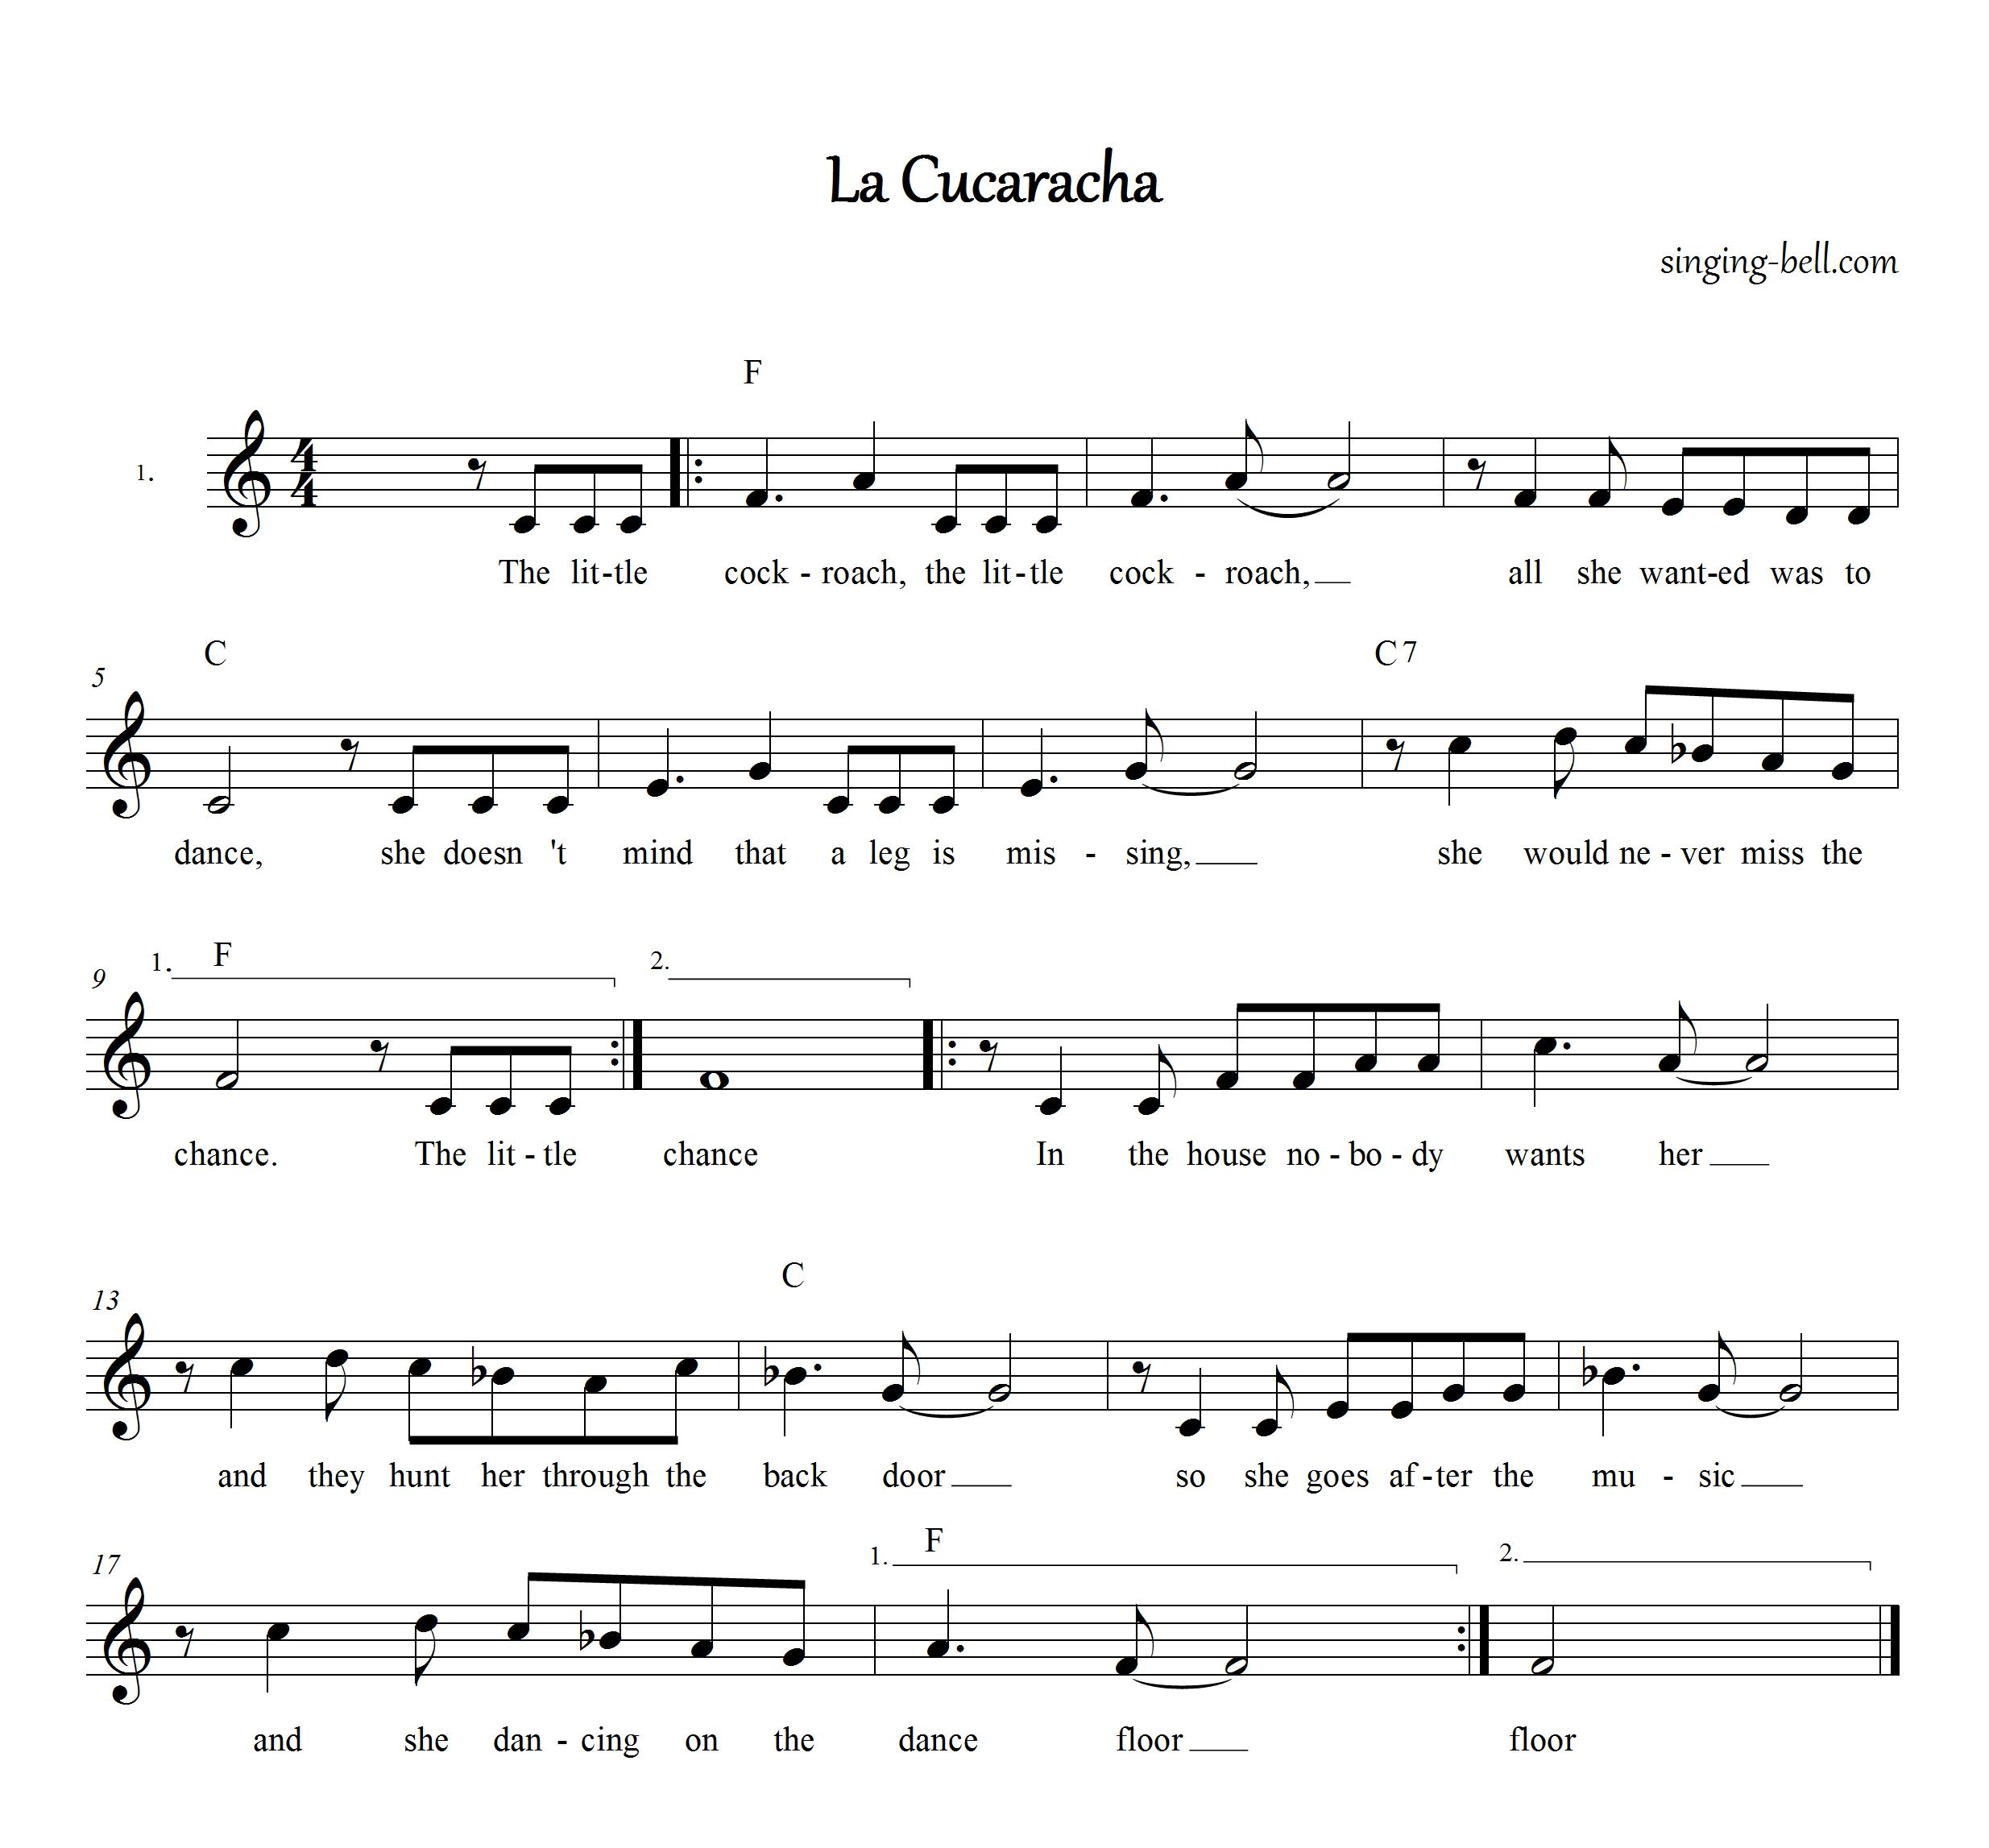 La Cucaracha_english_Singing-Bell